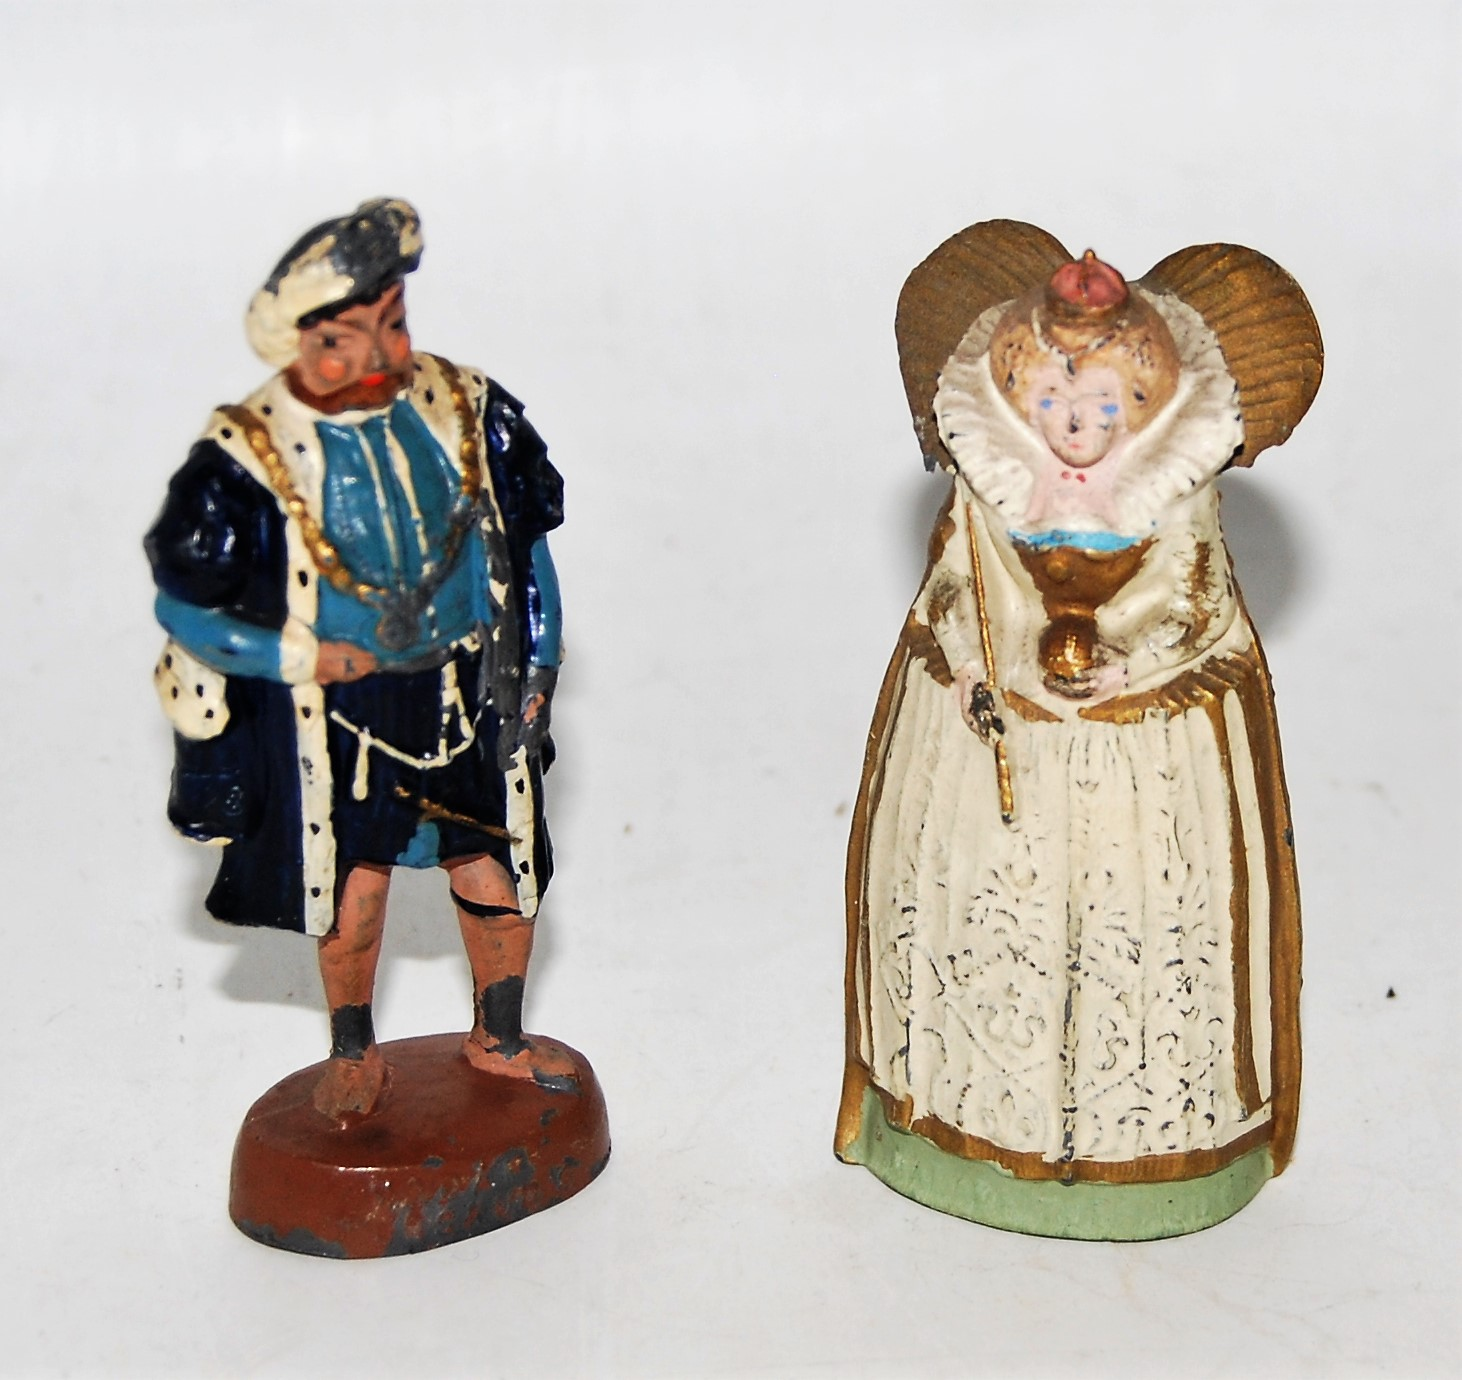 A Britains 1934 Madame Tussauds souvenir group comprising of model T1 Henry VIII, and model T4 Queen